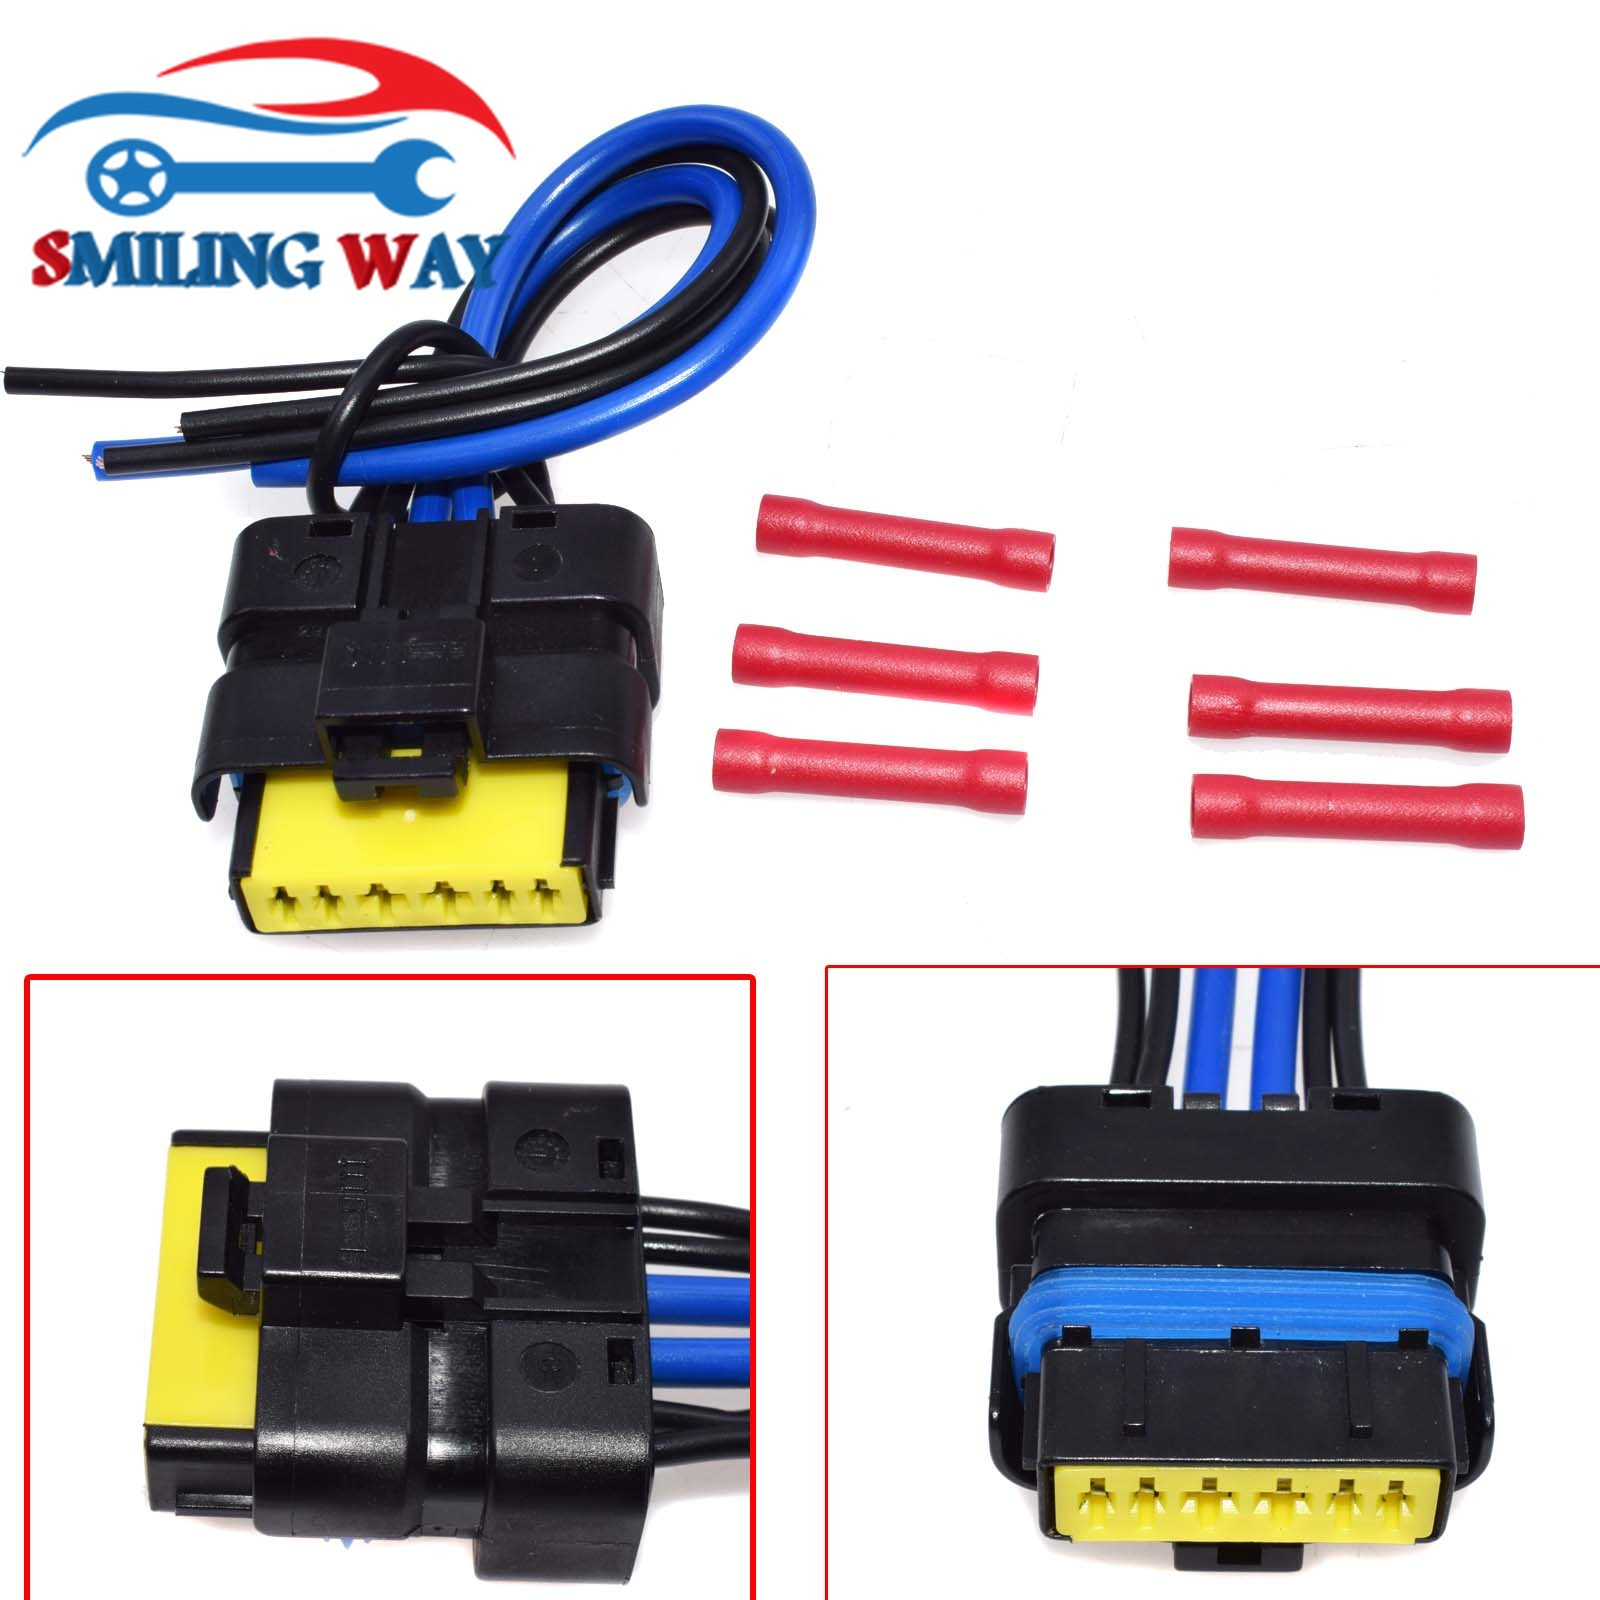 Smiling Way Window Module Motor Regulator Harness Plug Pigtail Jeep Rear Door Wiring Pigtails Connector For Renault Clio Espace Laguna Megane Scenic In Car Switches Relays From